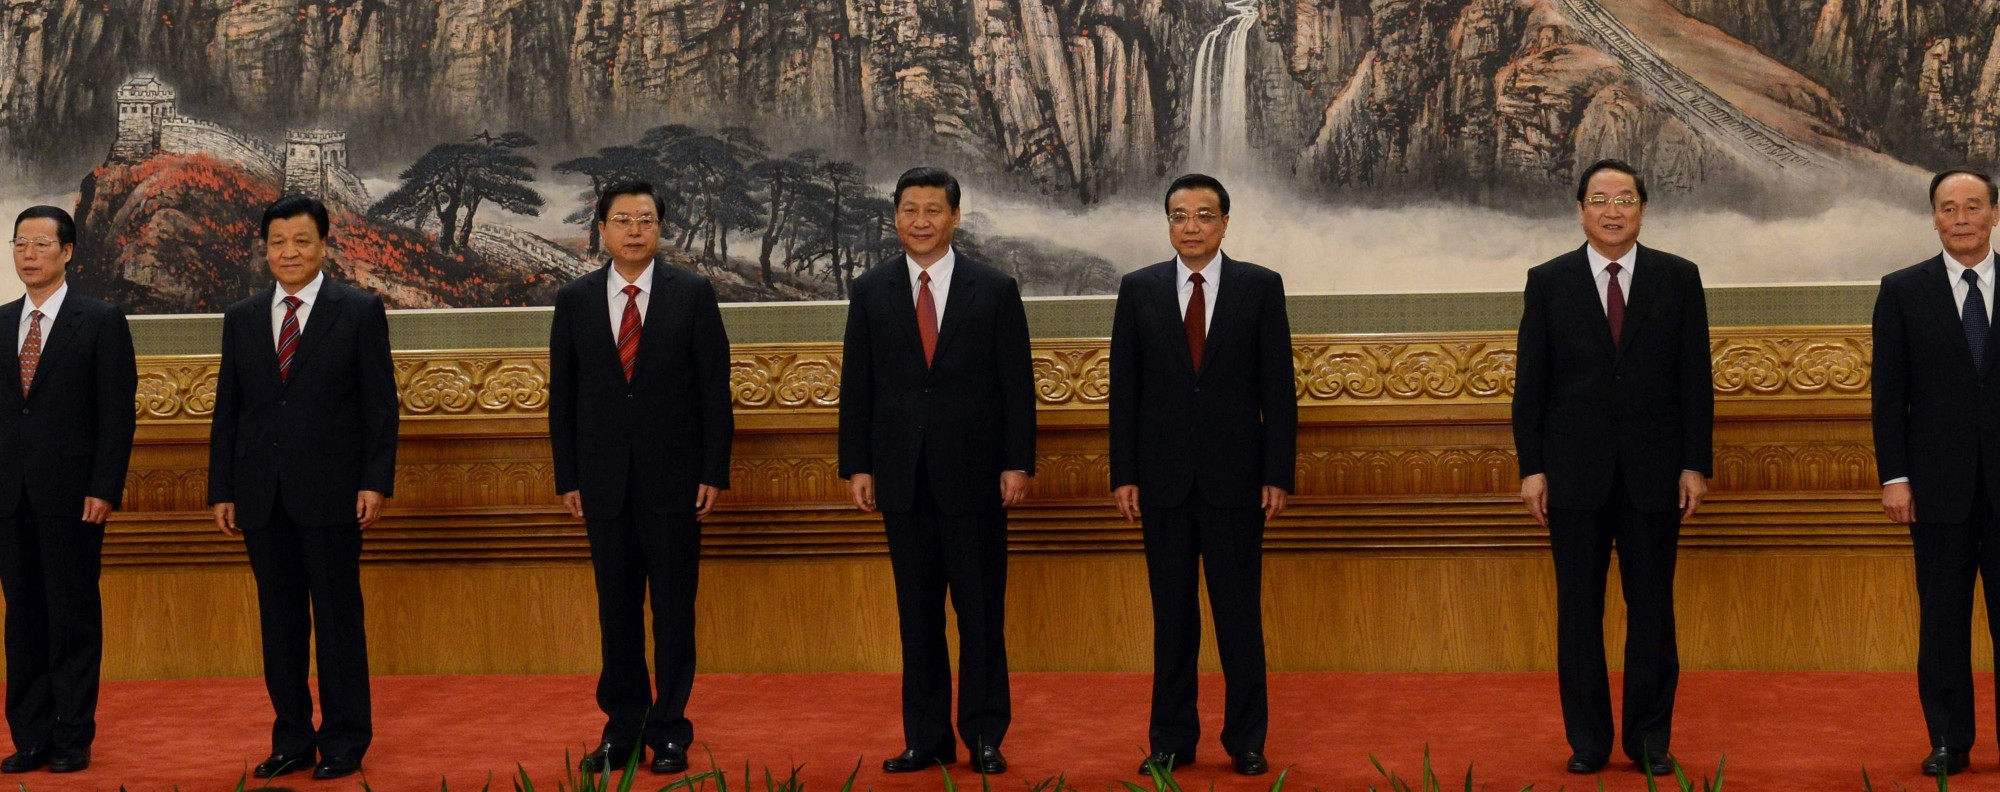 The Politburo Standing Committee. Photo: AFP